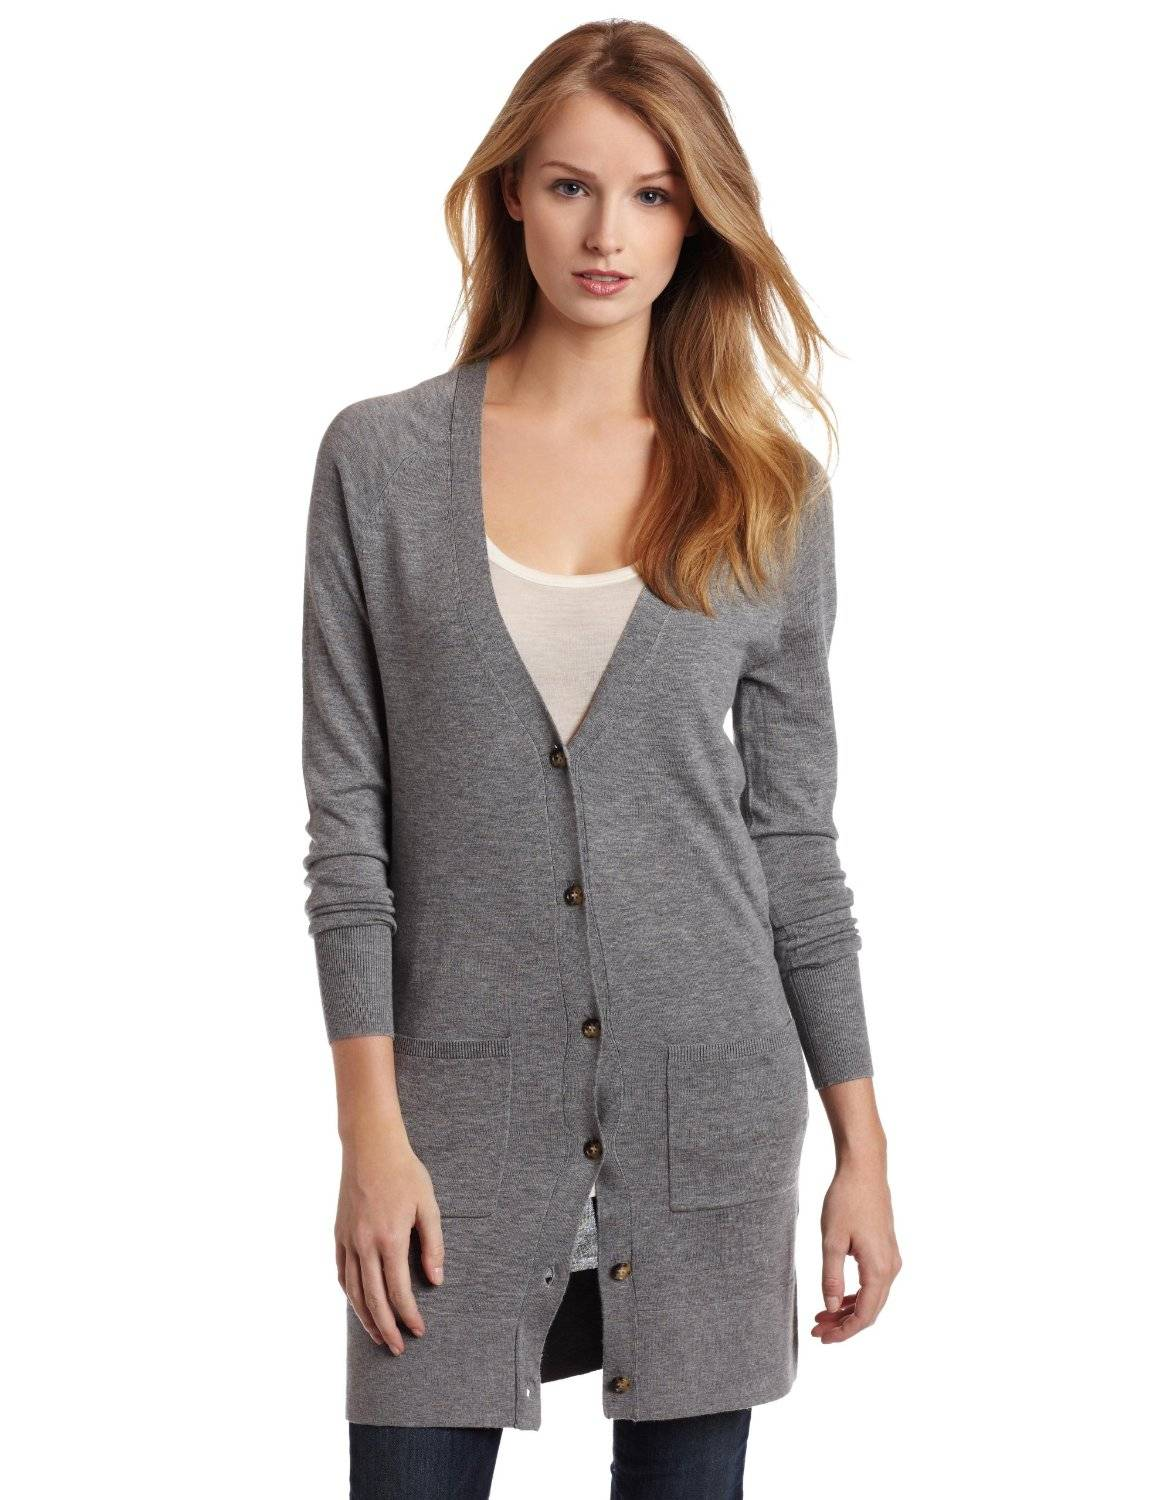 Get stylish cardigan sweaters for women